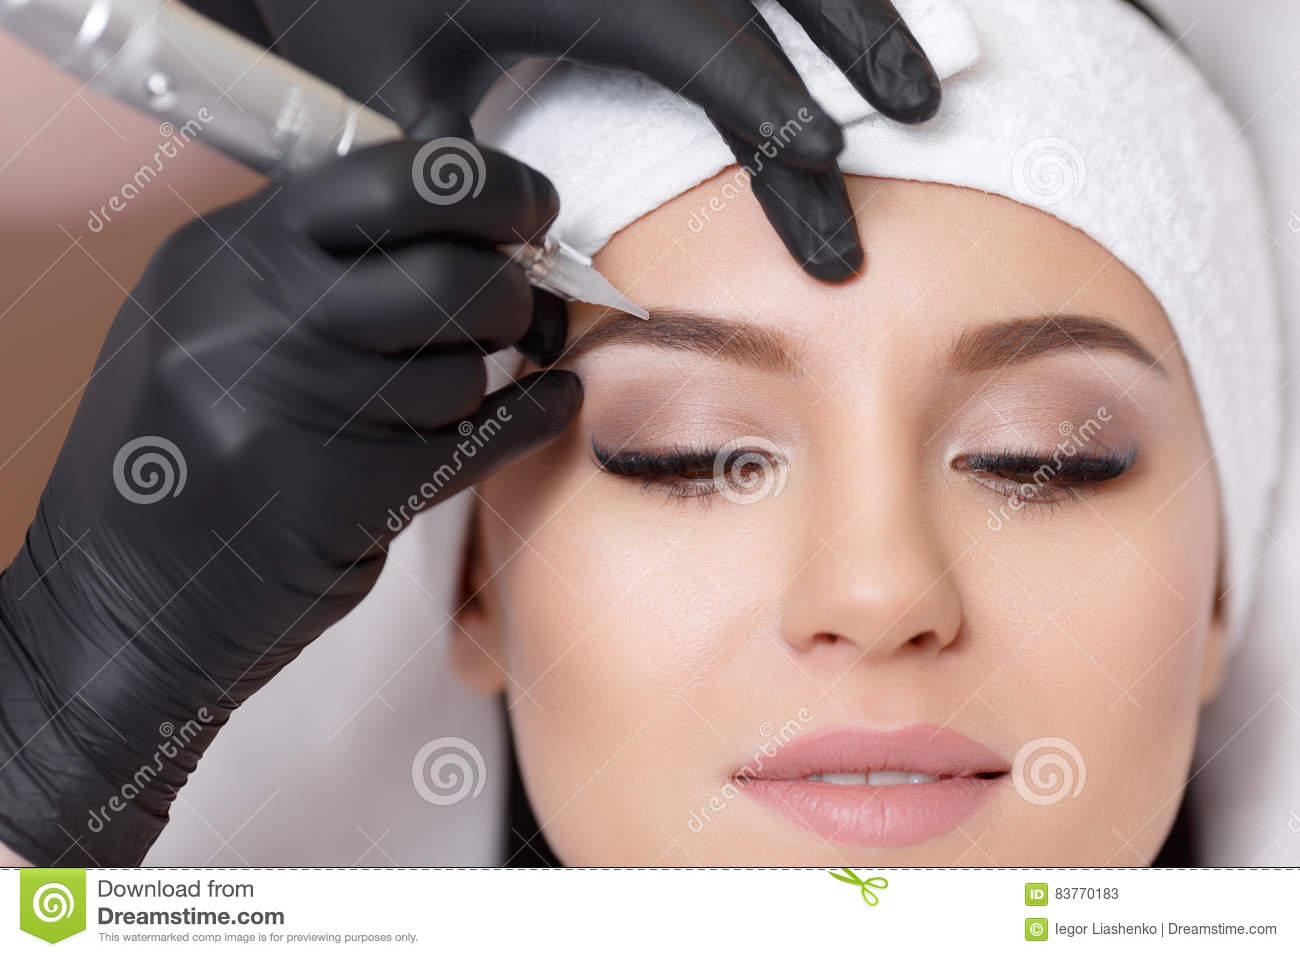 Permanent makeup stock photos royalty free images for Eyebrow tattoo images